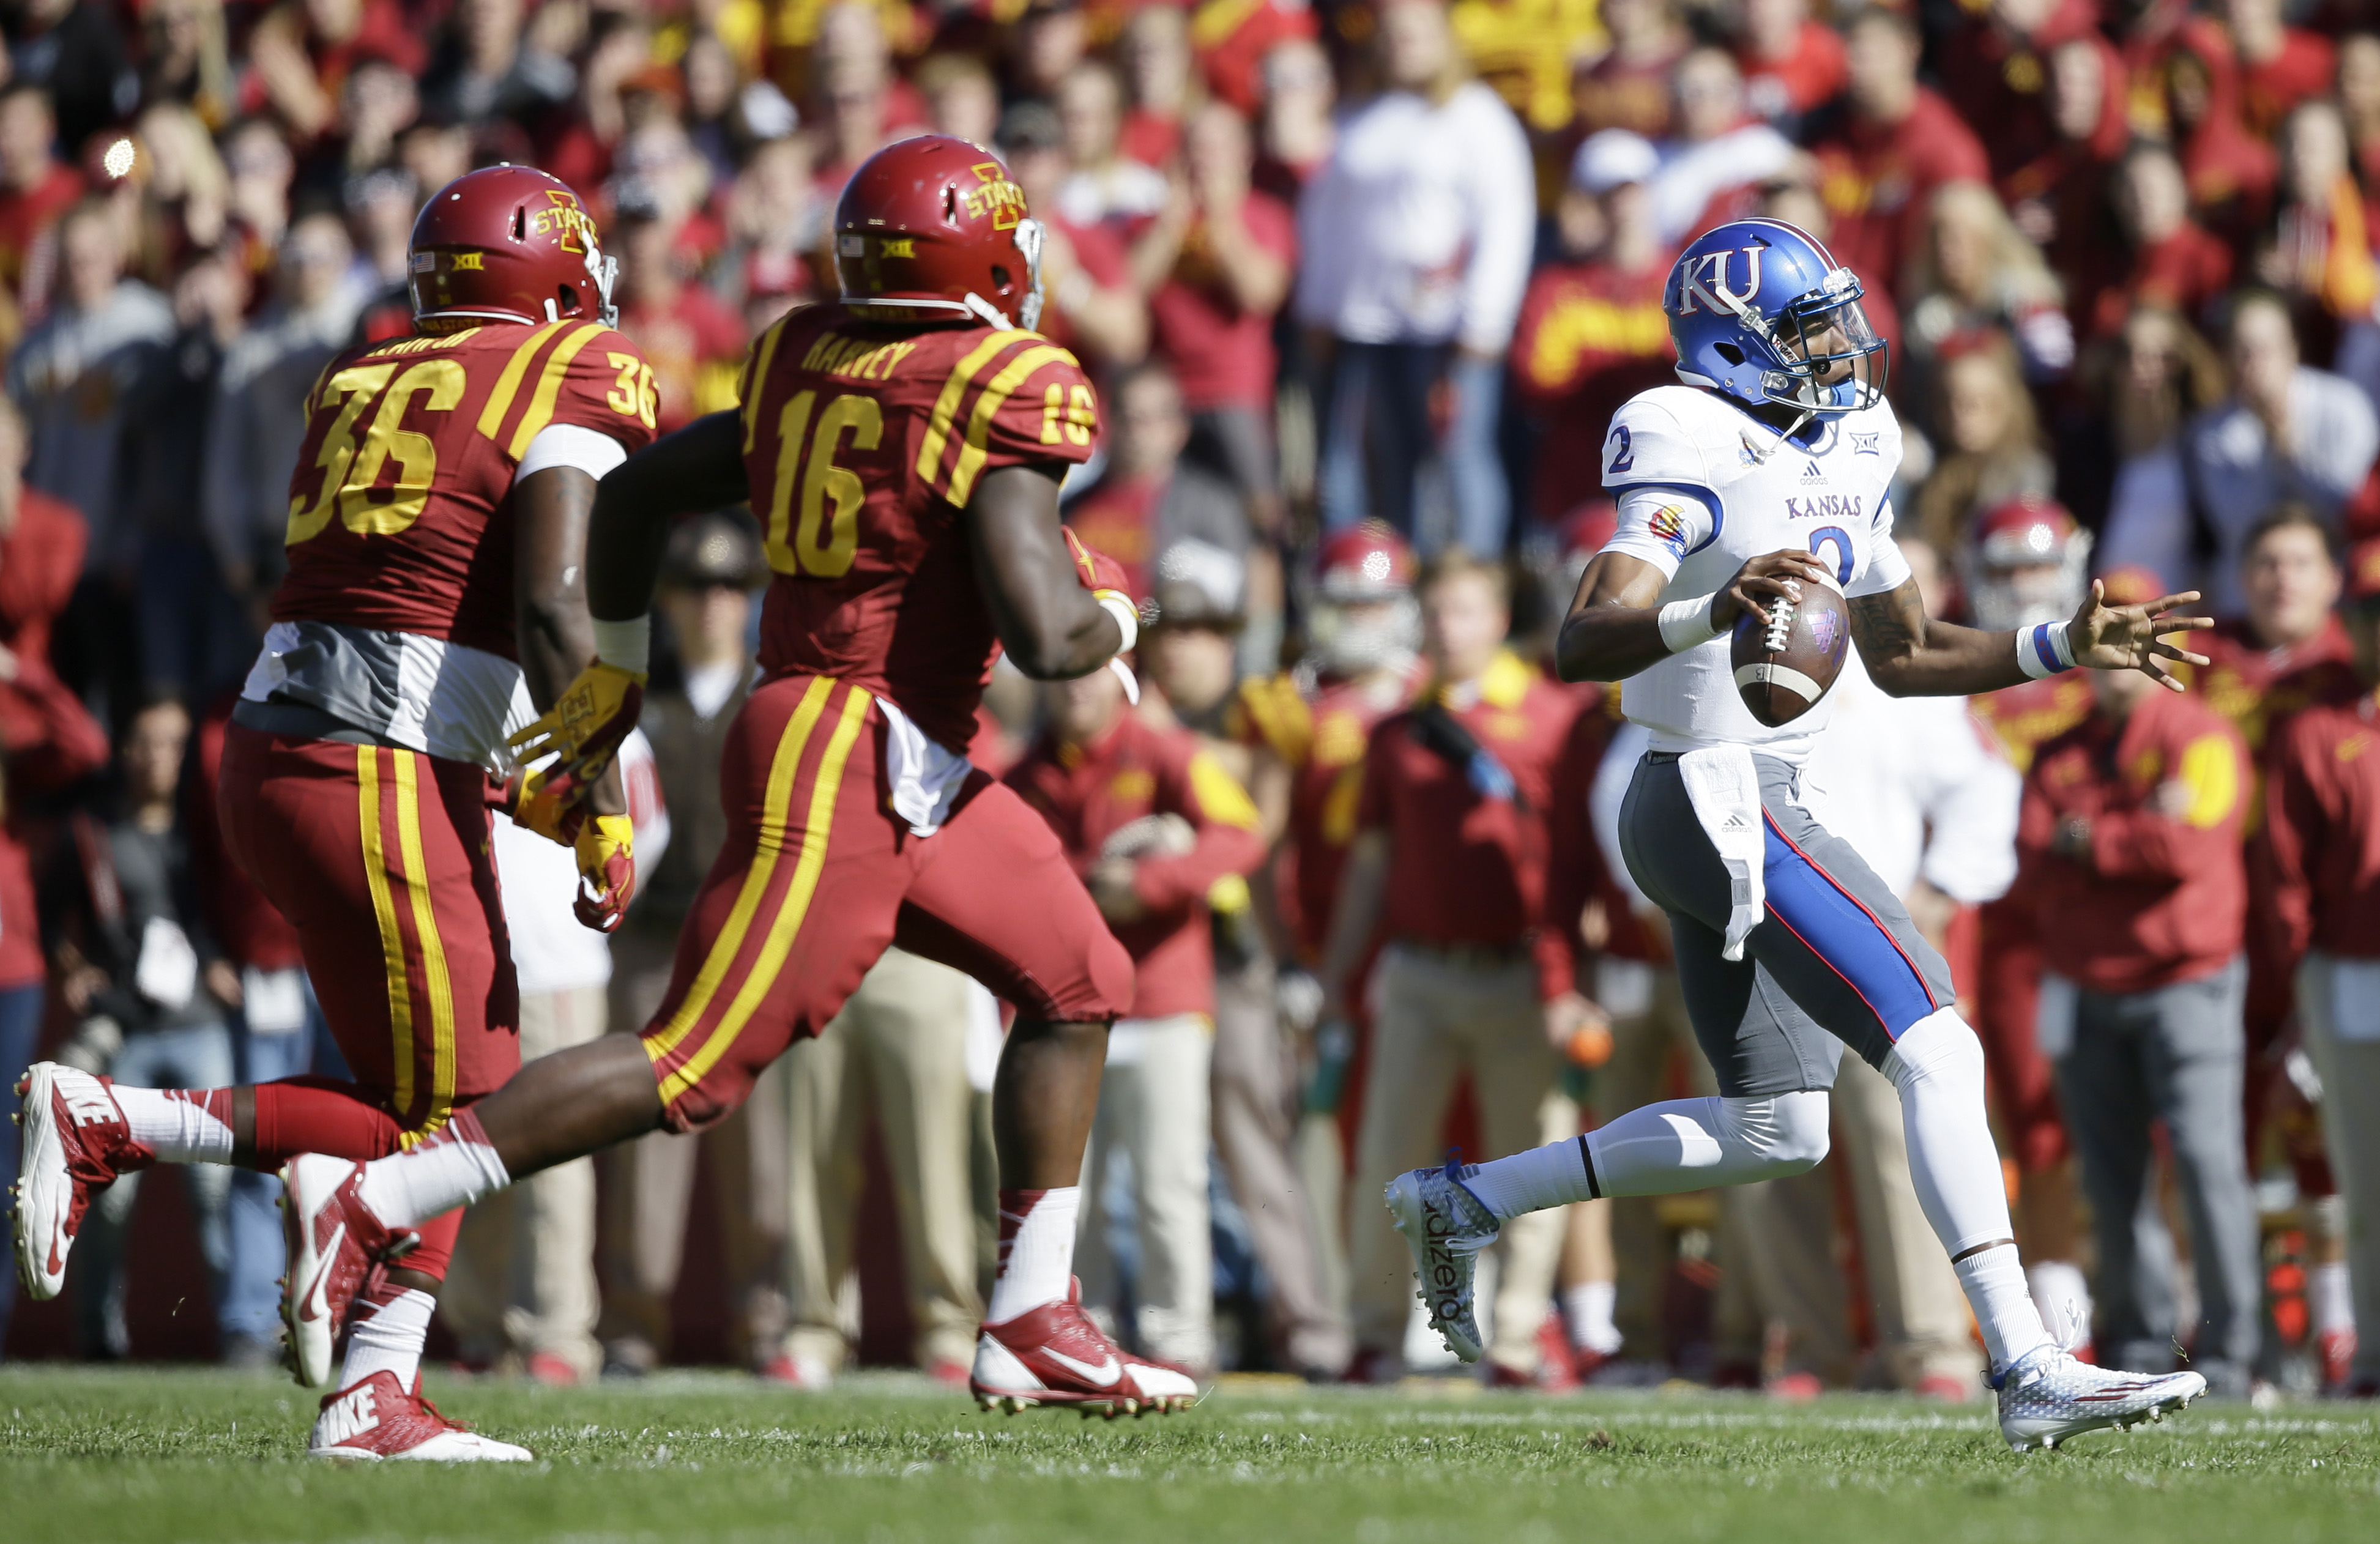 Kansas quarterback Montell Cozart, right, runs from Iowa State defenders Bobby Leath (36) and Willie Harvey (16) during the first half of an NCAA college football game, Saturday, Oct. 3, 2015, in Ames, Iowa. Iowa State won 38-13. (AP Photo/Charlie Neiberg